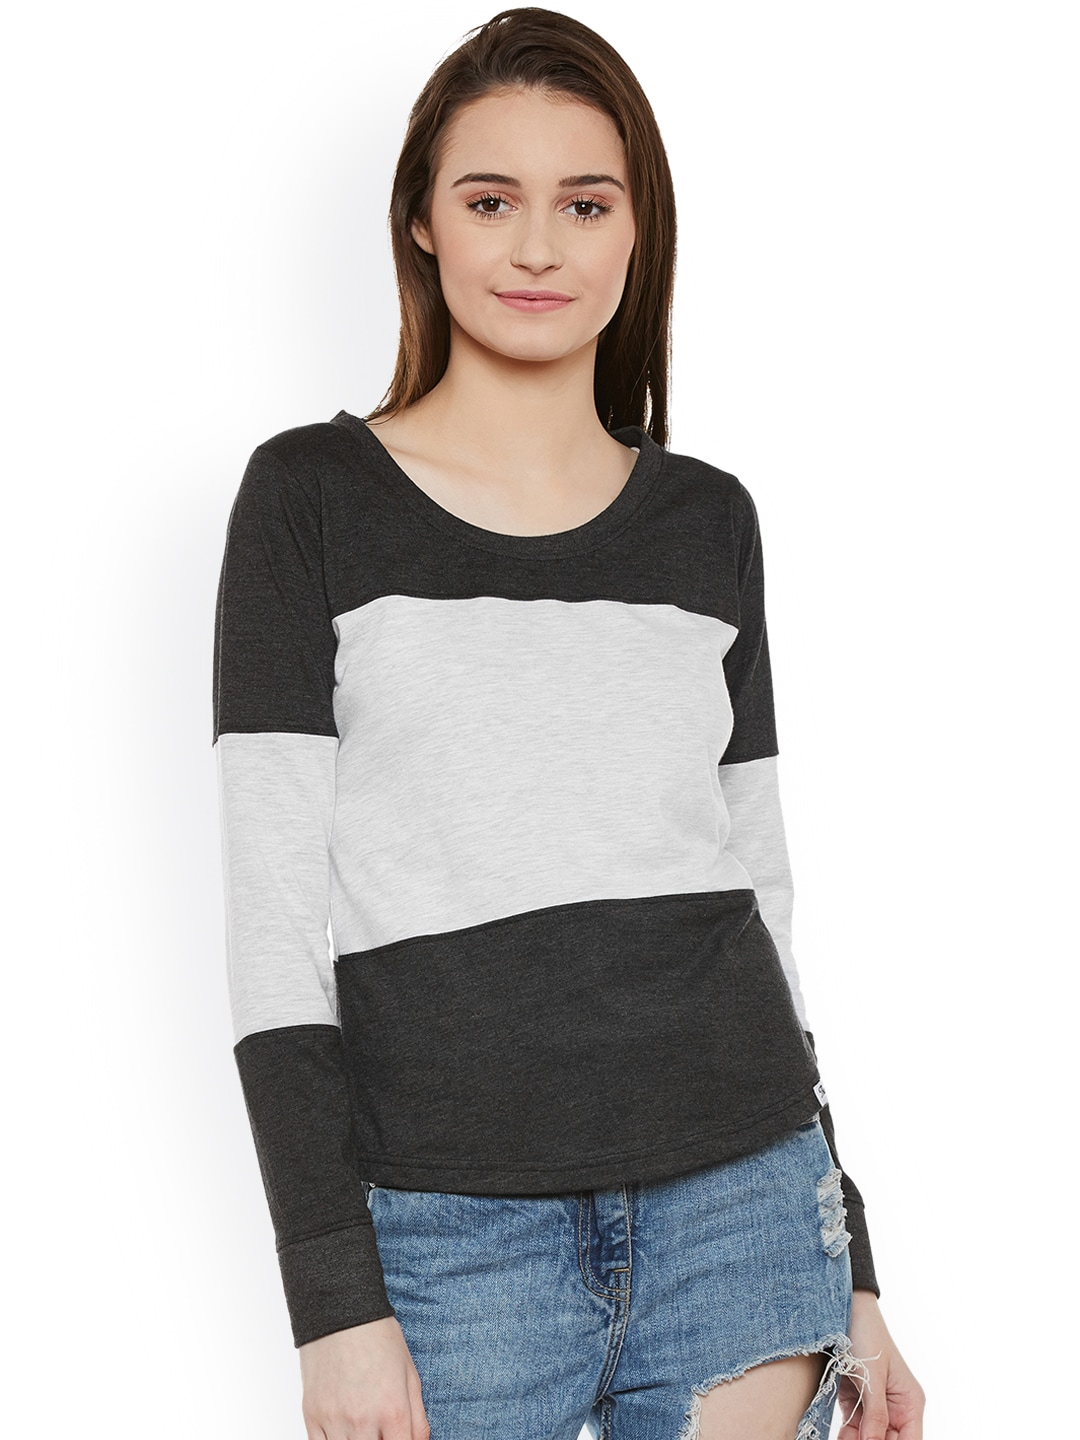 e275819dcd9f4f Ladies Tops - Buy Tops   T-shirts for Women Online